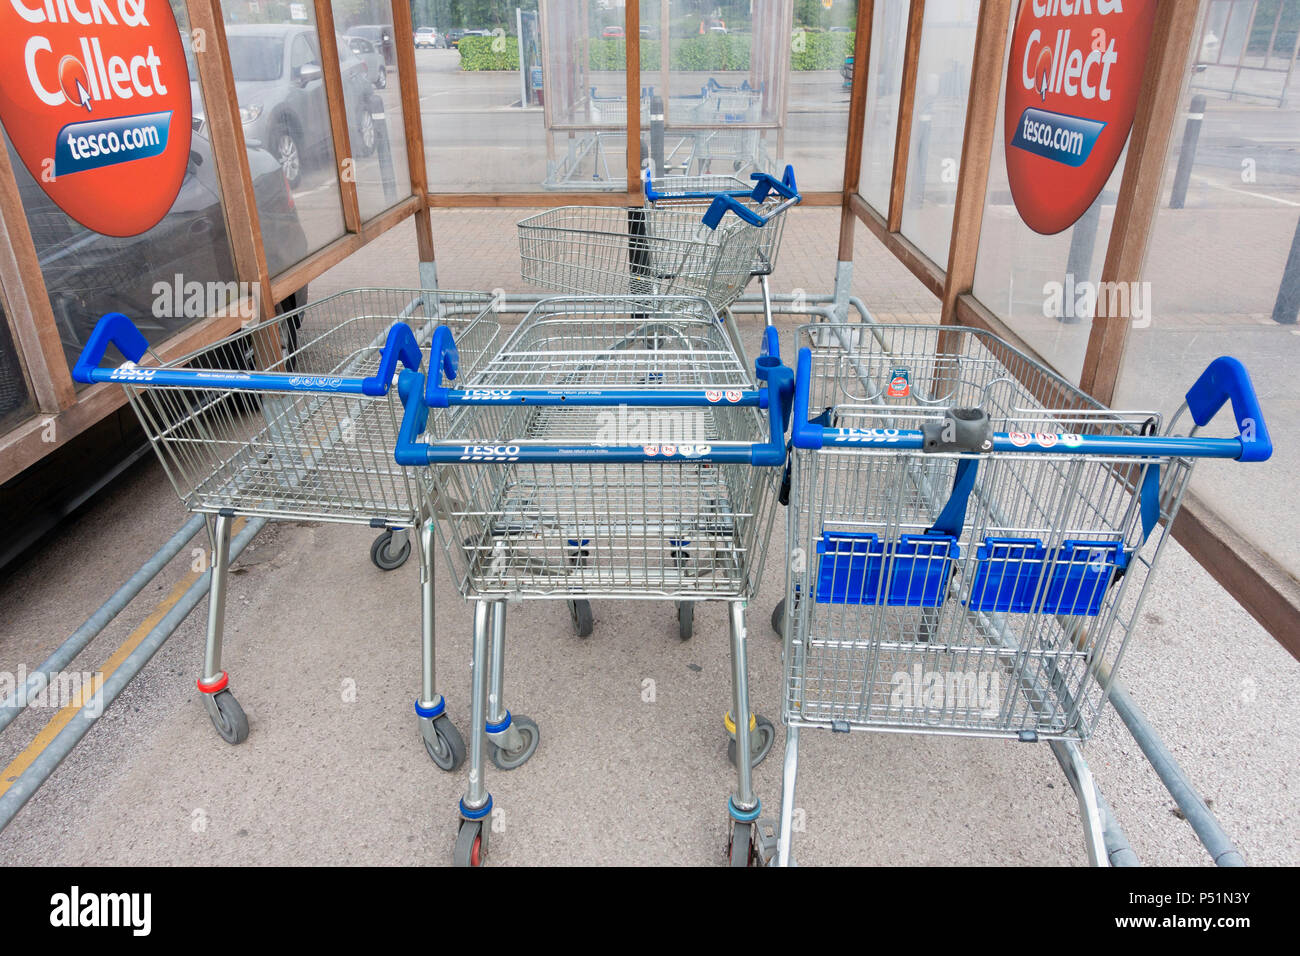 How to collect trolley 40